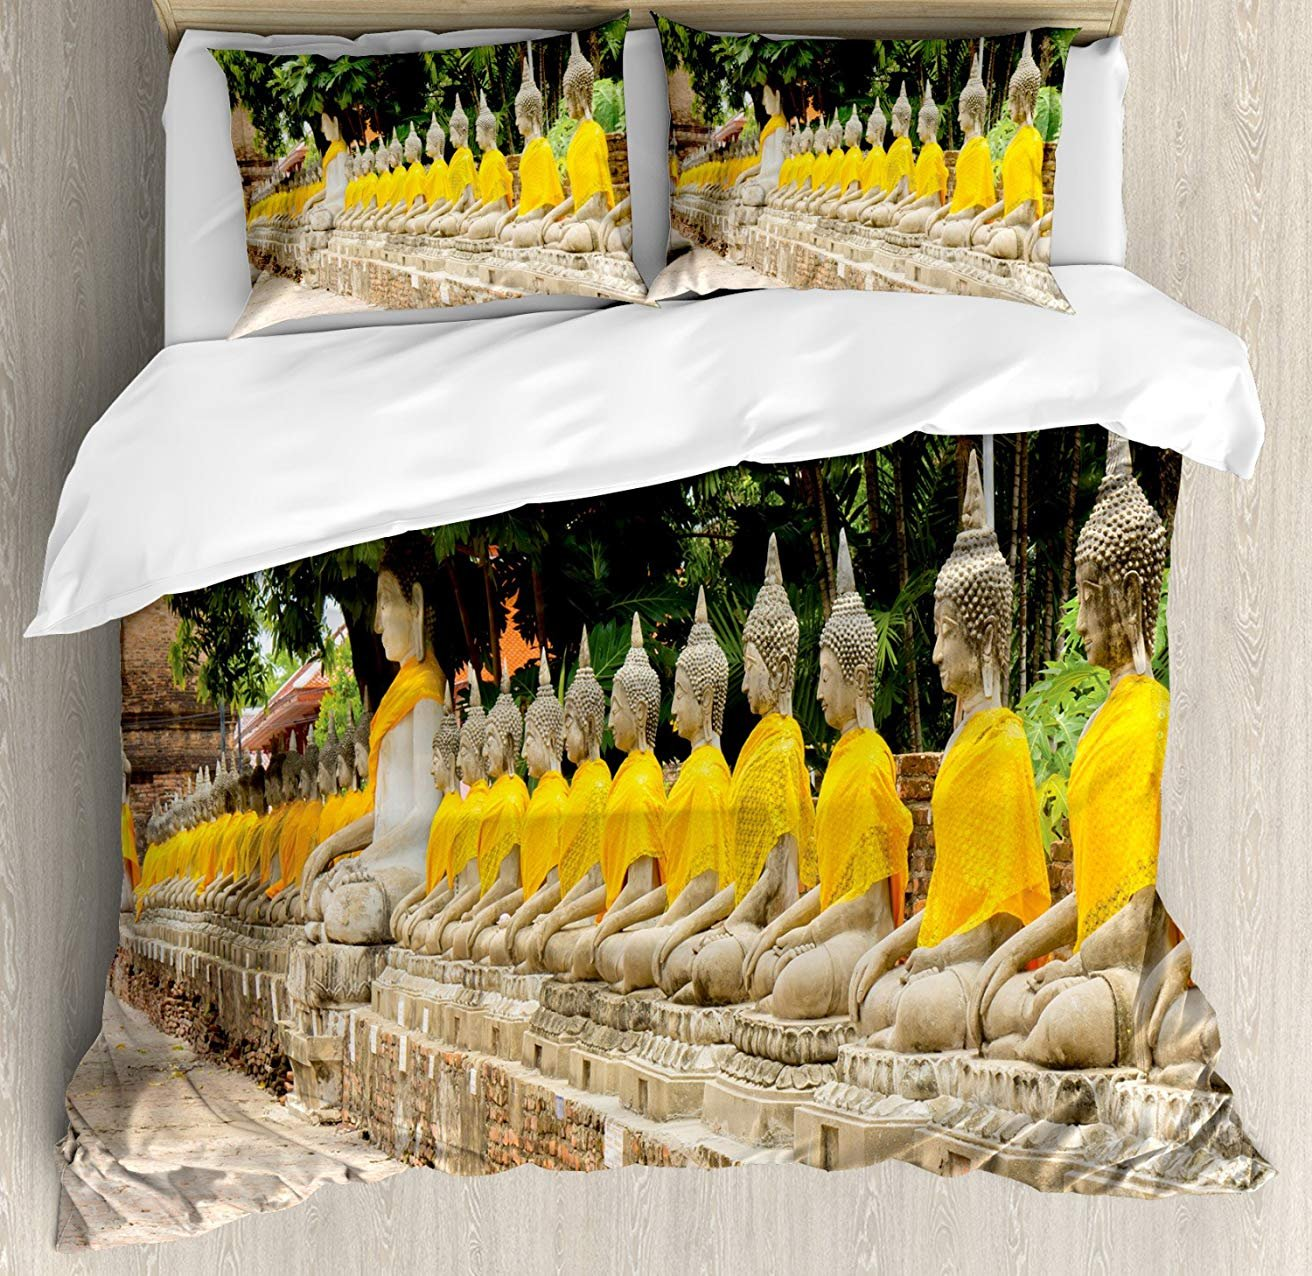 Asian Decor Bet Set 4pcs Bedding Sets Duvet Cover Flat Sheet No Comforter with Decorative Pillow Cases Twin Size for Kids Adults-Picture of Religious Statues in Thailand Traditional Thai Home Decor by LAMANDA